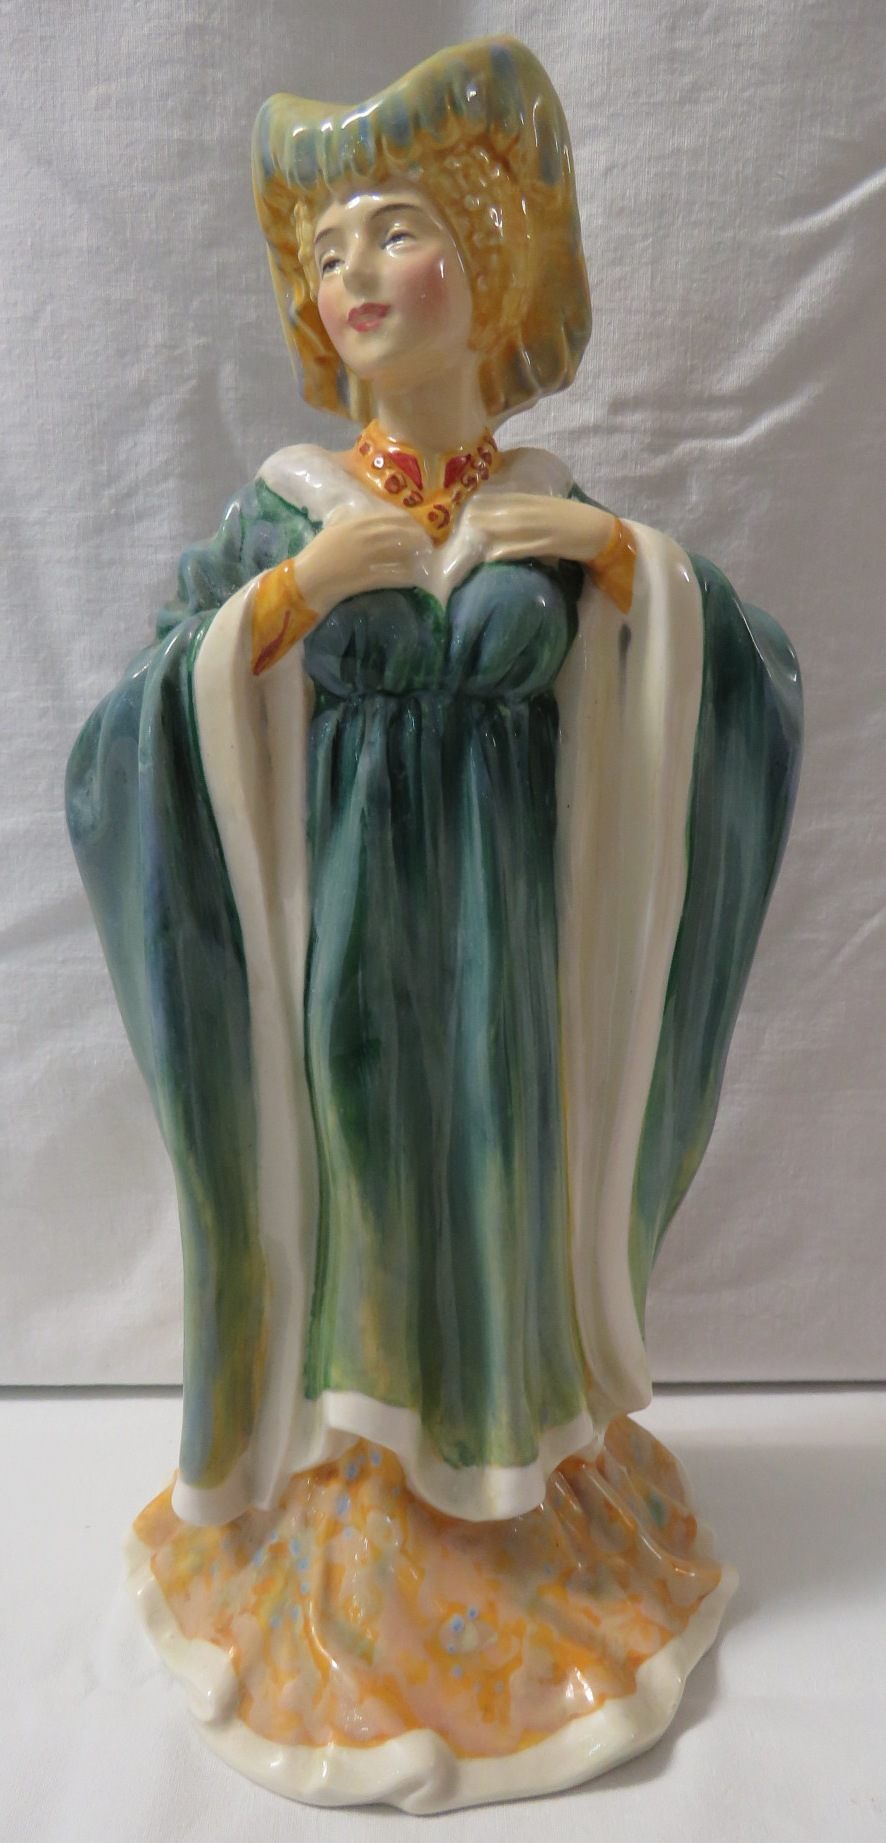 Lot 26 - Royal Doulton figure Margaret of Anjou 1430-1482 HN 2012, green factory transfer mark, various